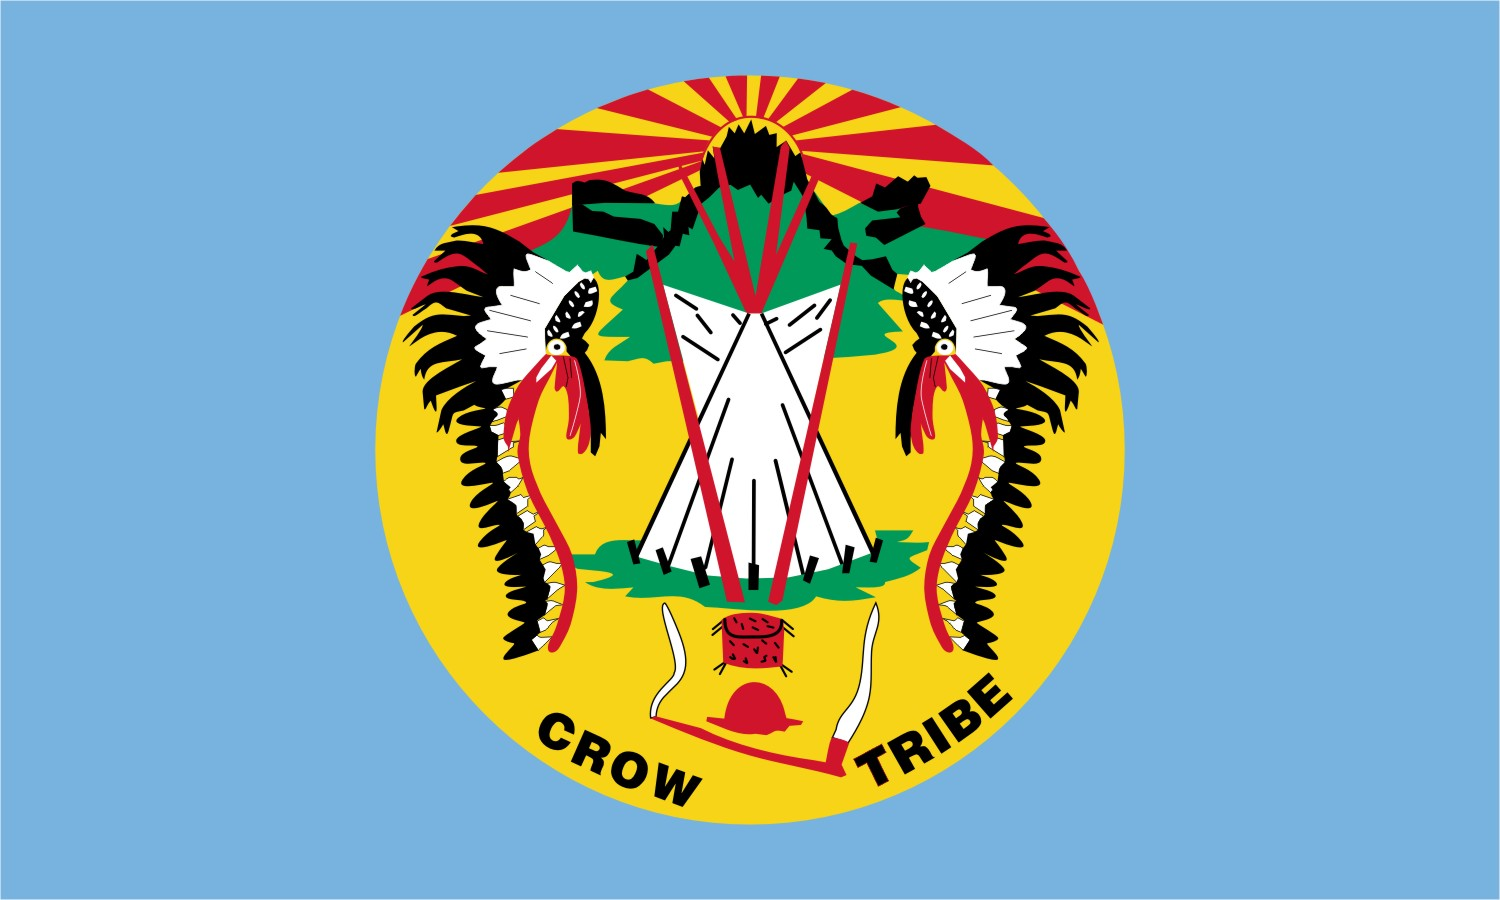 Former convicted leader of Crow Tribe seeks to clear his name